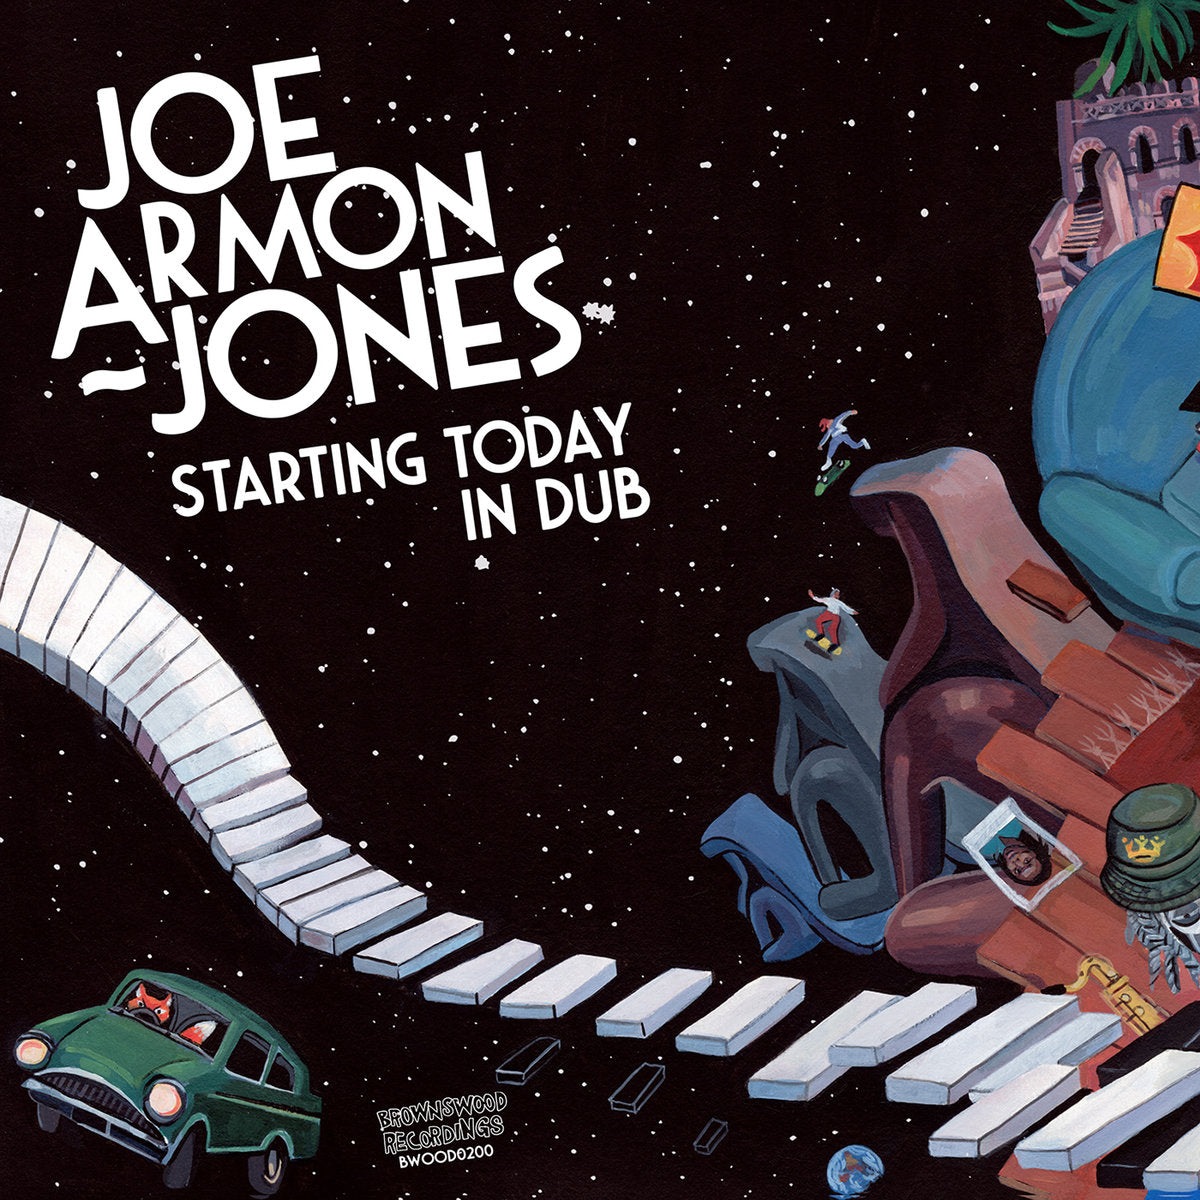 Joe Armon-Jones - Starting Today in Dub 12""